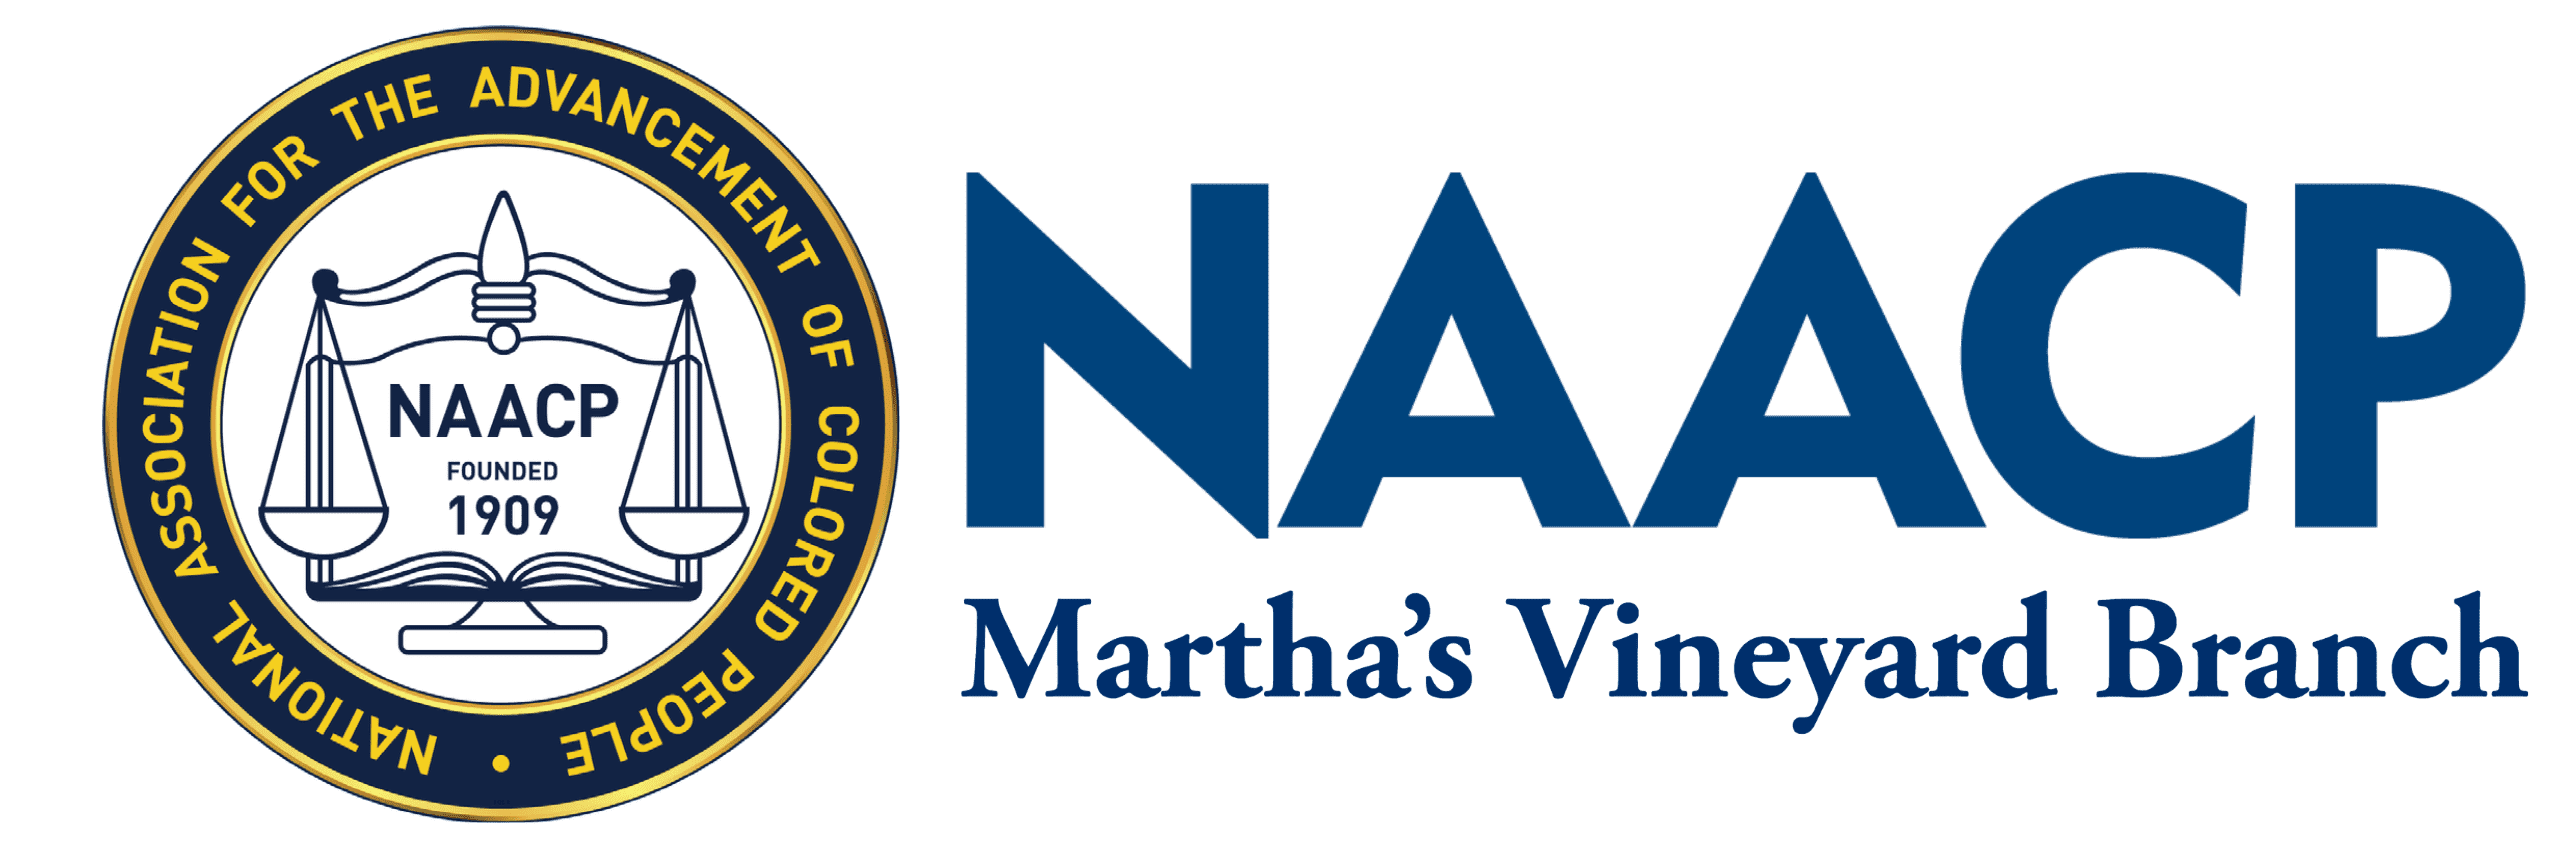 National Association for the Advancement of Colored People of Martha's Vineyard